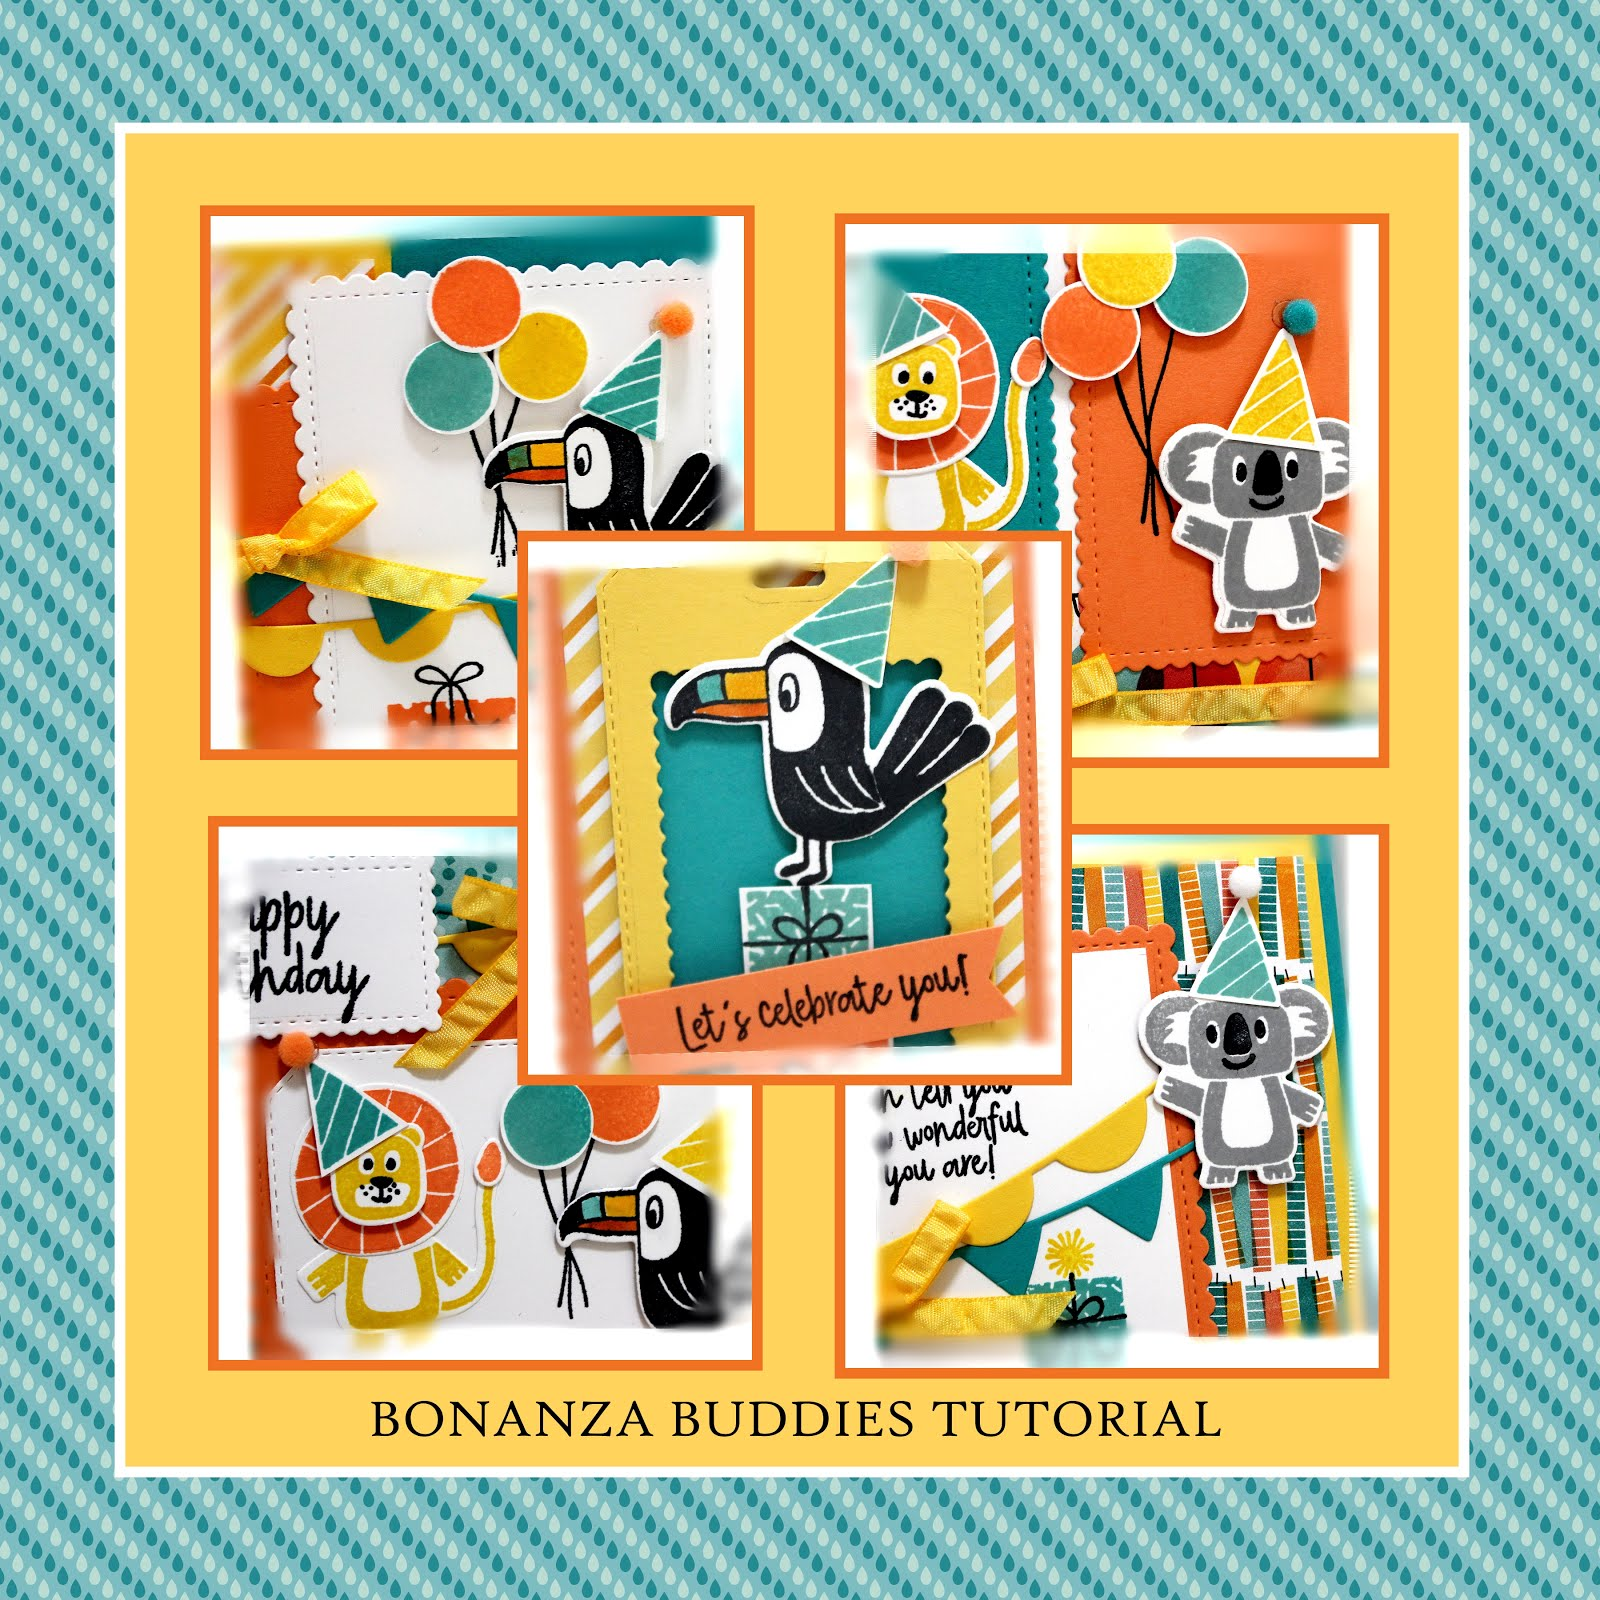 March 2020 Bonanza Buddies Tutorial